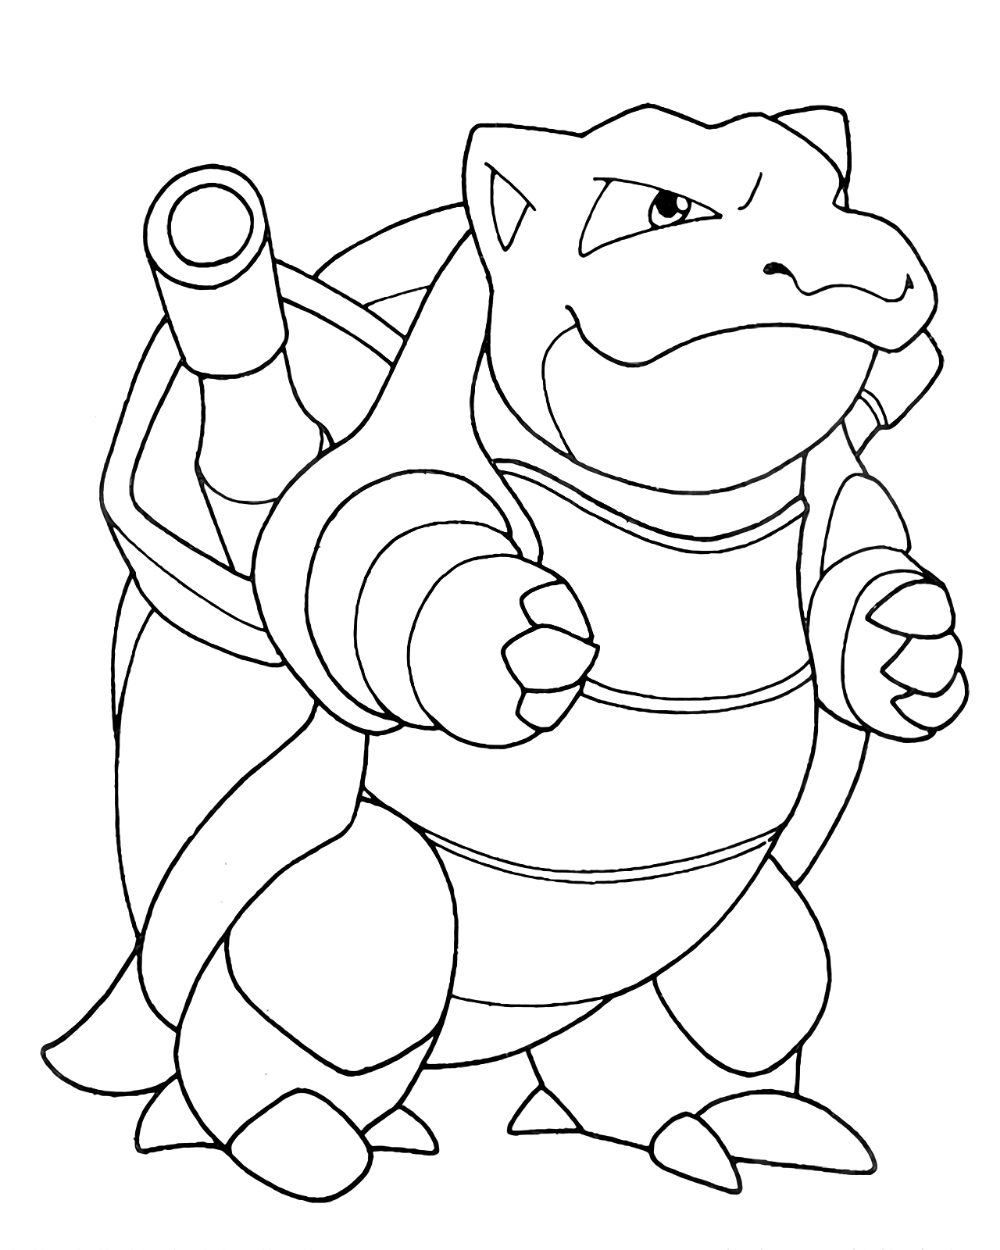 Blastoise Coloring Pages Pokemon Coloring Pages Pokemon Coloring Coloring Pages